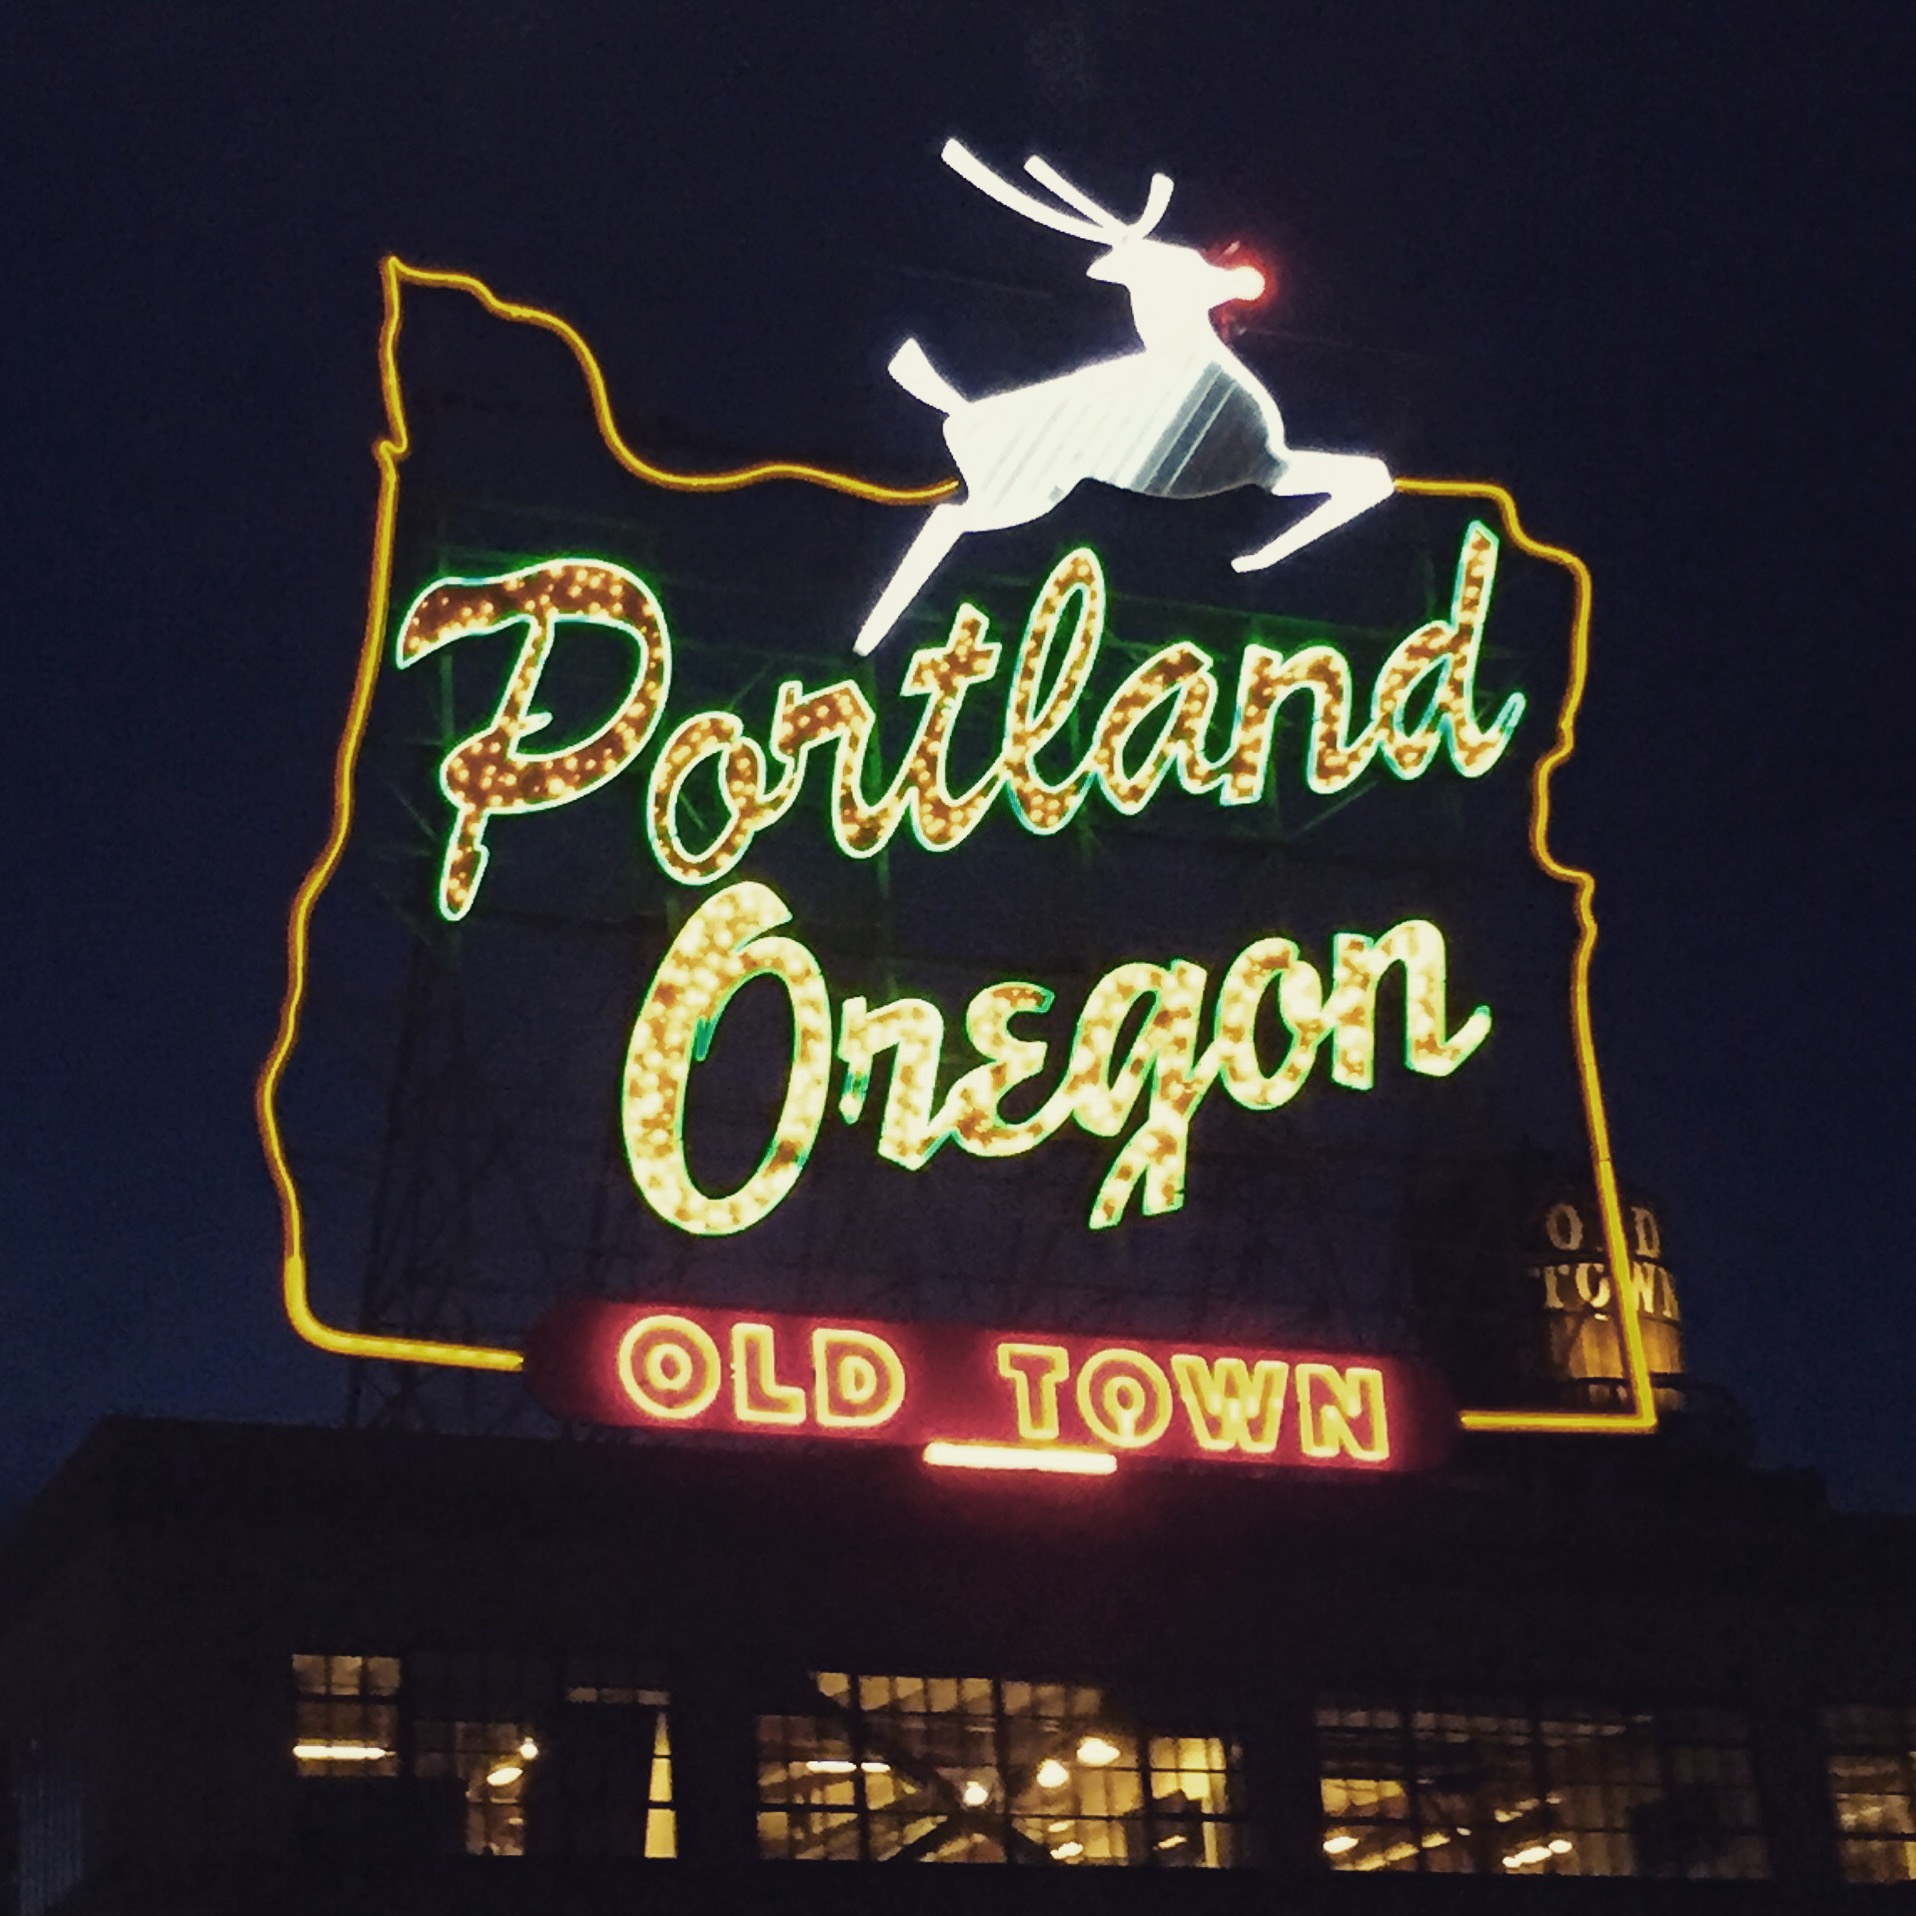 Portland Oregon sign in Old Town.